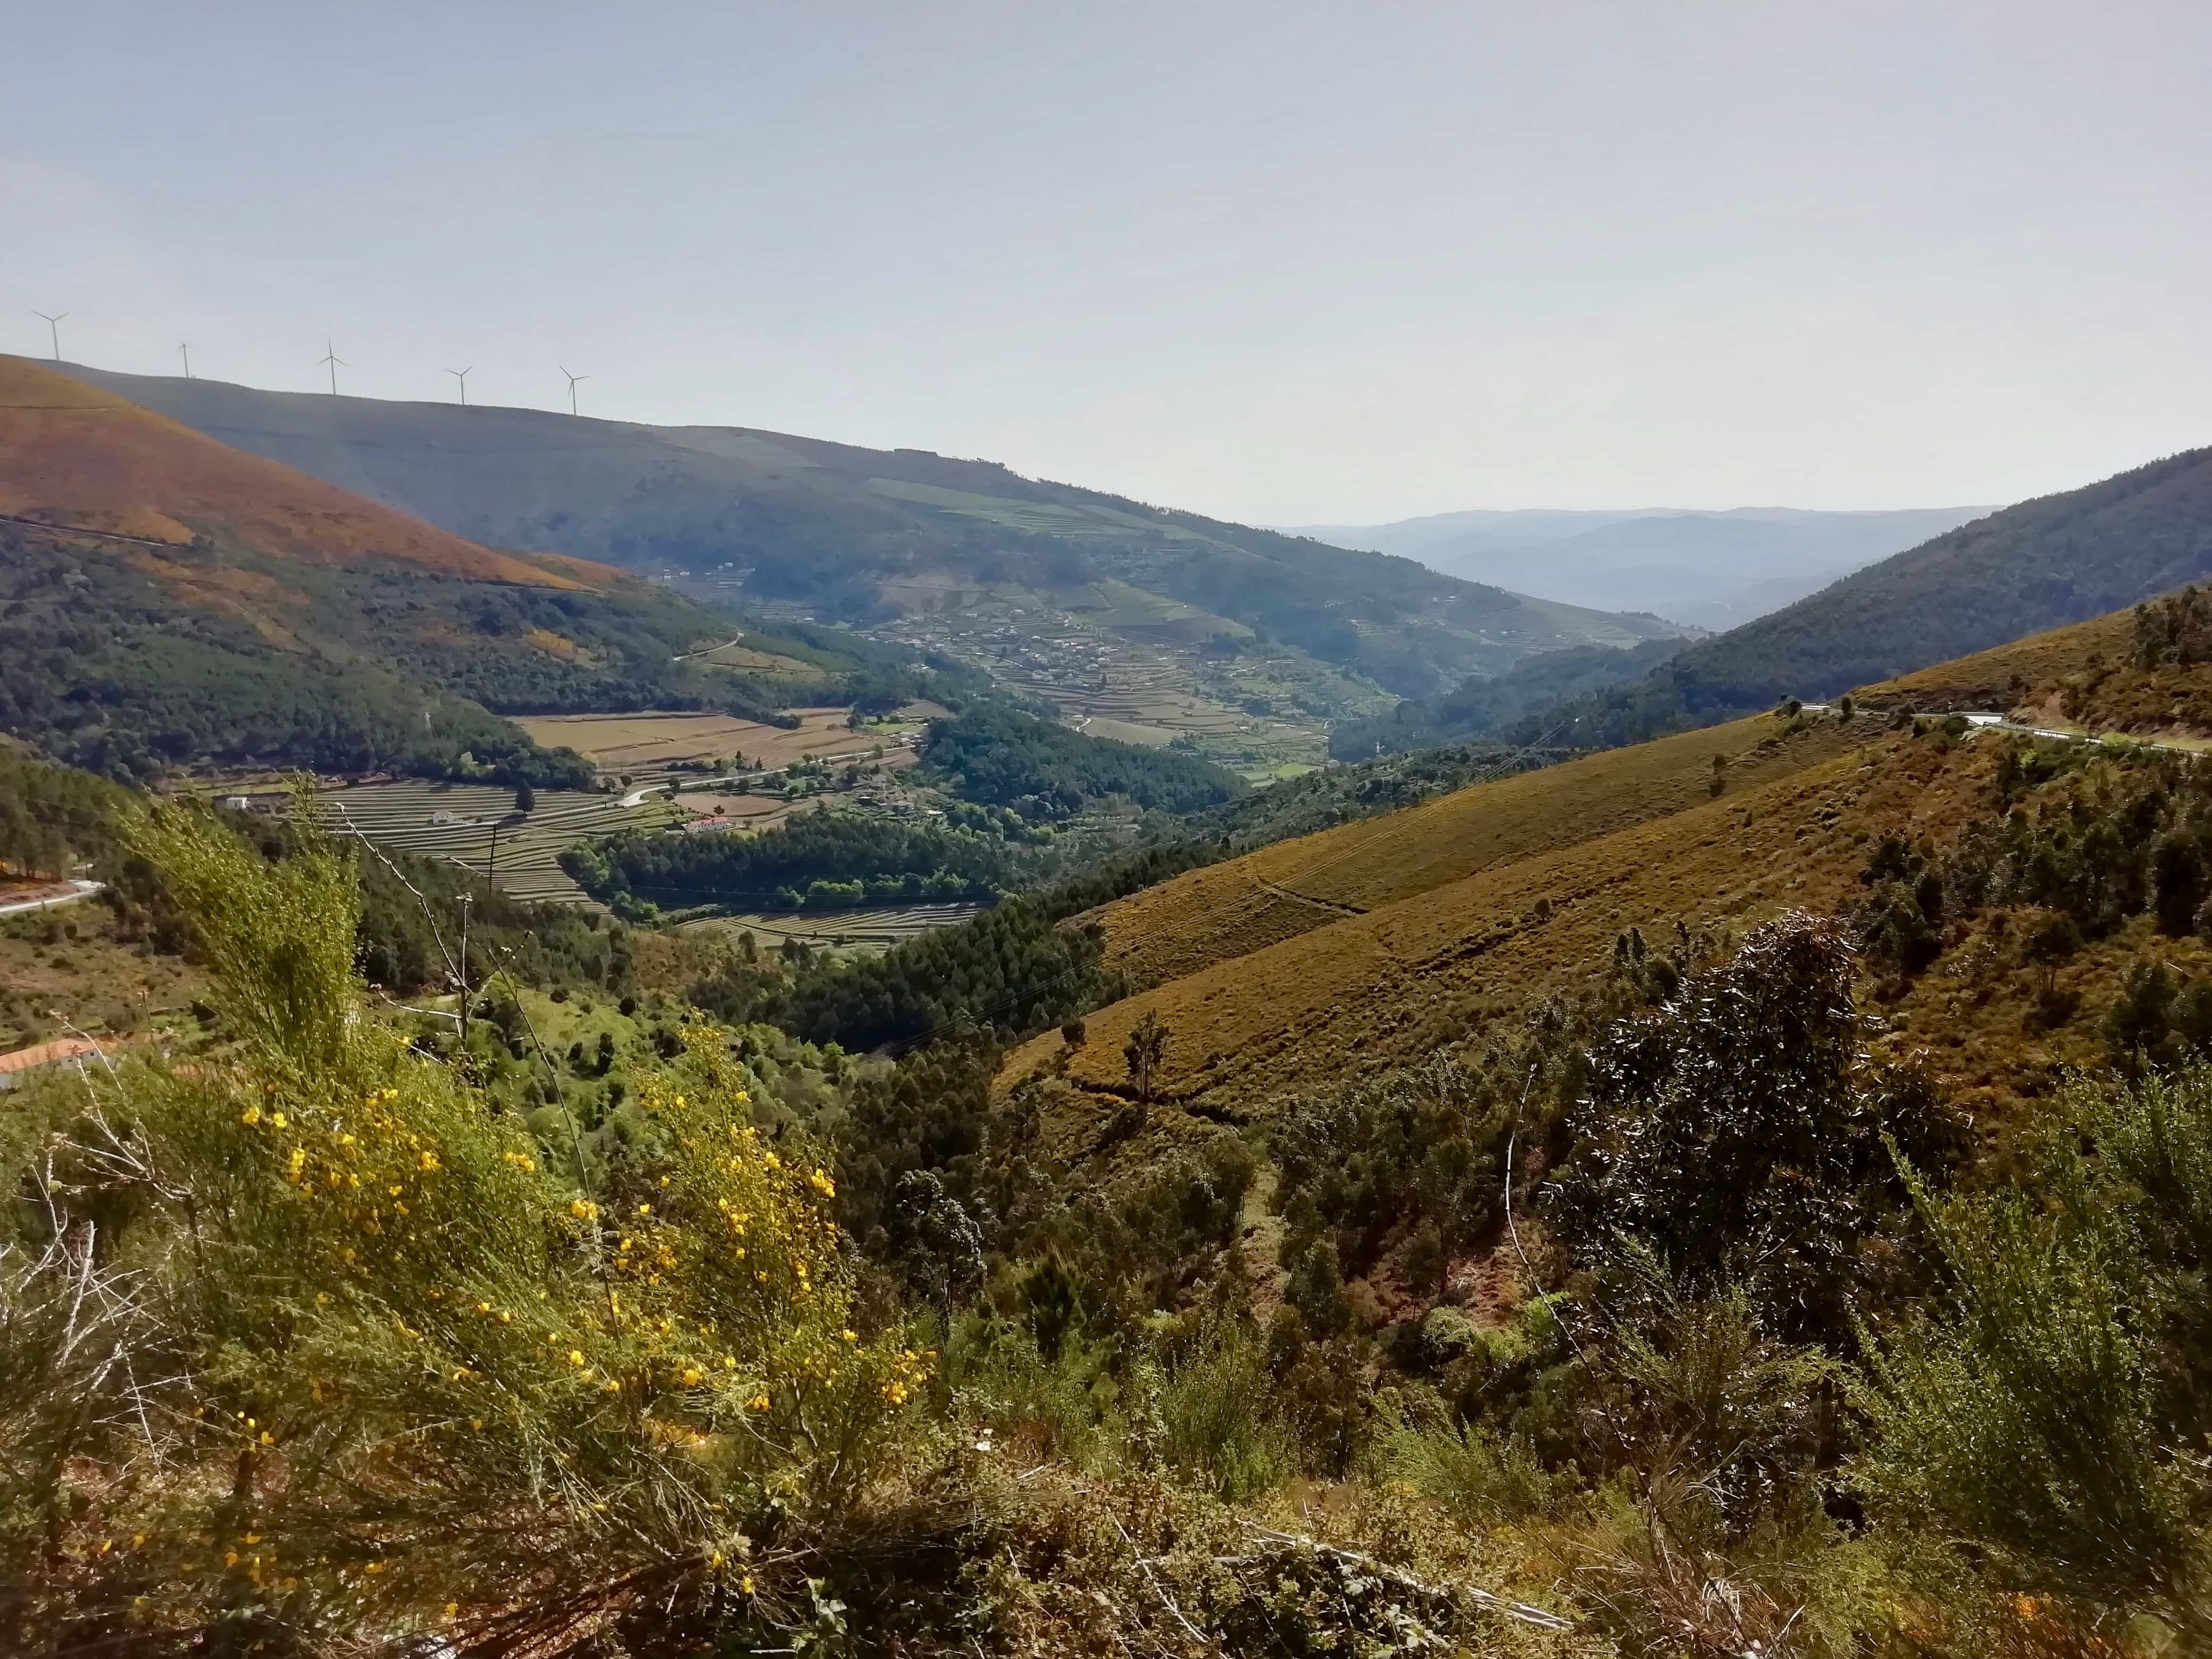 Countryside views while driving the Douro Valley